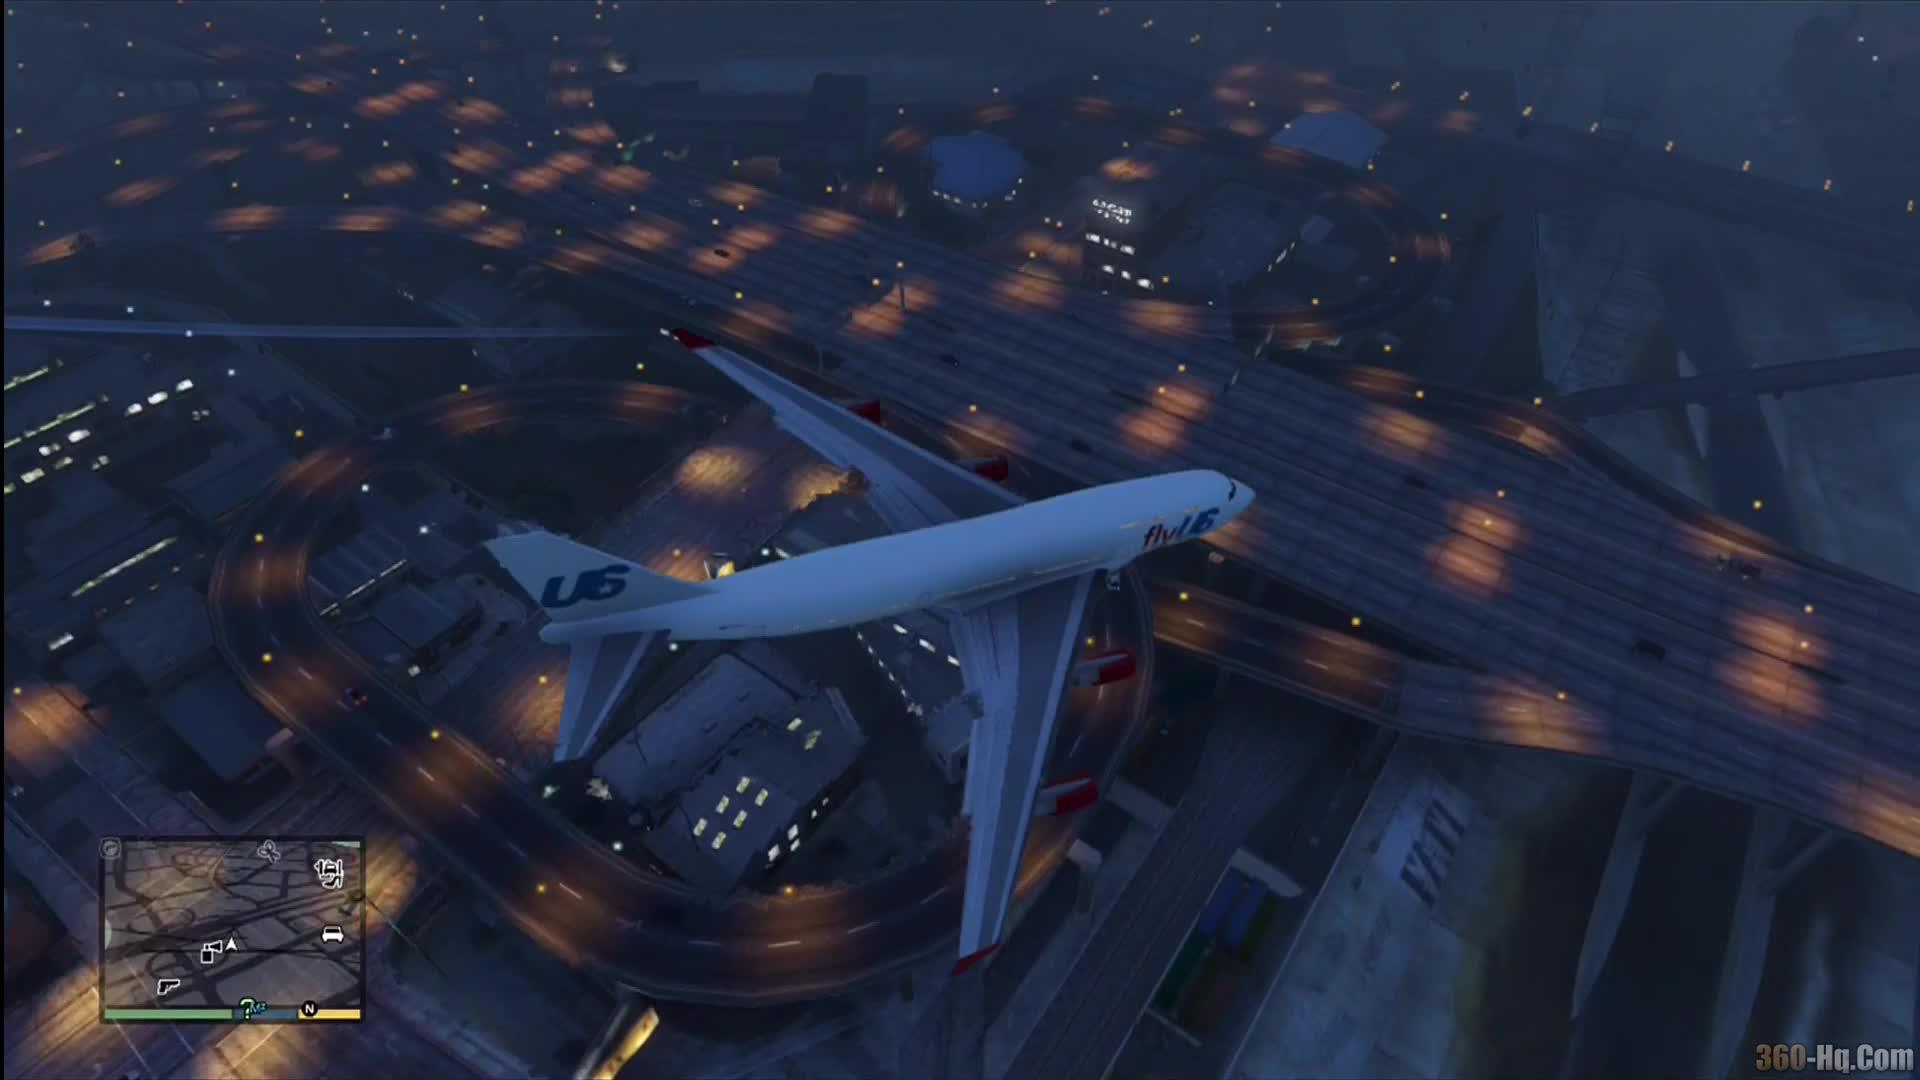 Grand Theft Auto V Screenshot 29508